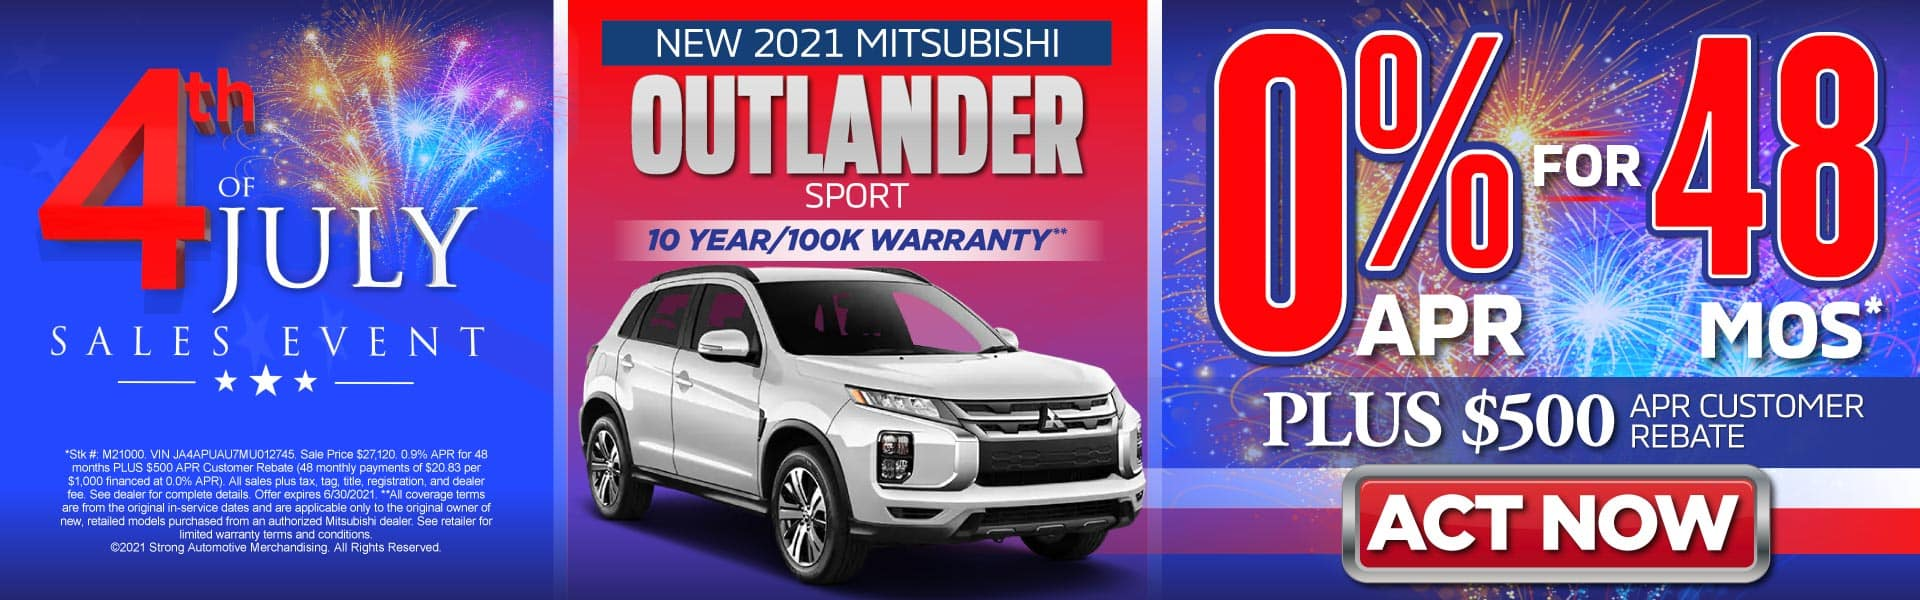 New 2021 Mitsubishi Outlander Sport – 0% for 48 months PLUS $500 APR Customer Rebate* - Act Now